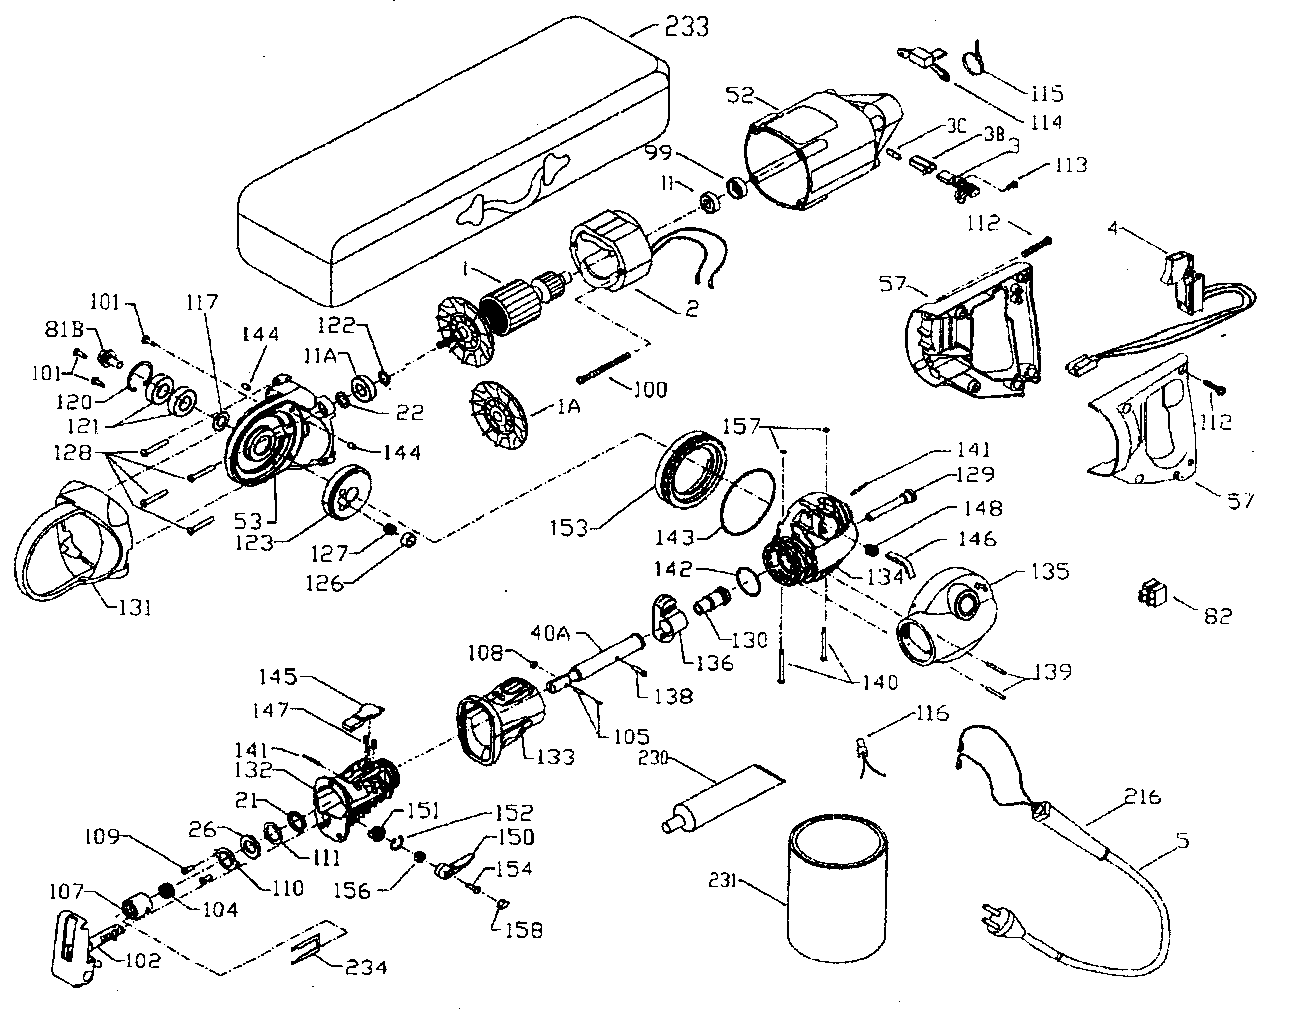 Porter-Cable model 740 saw reciprocating genuine parts